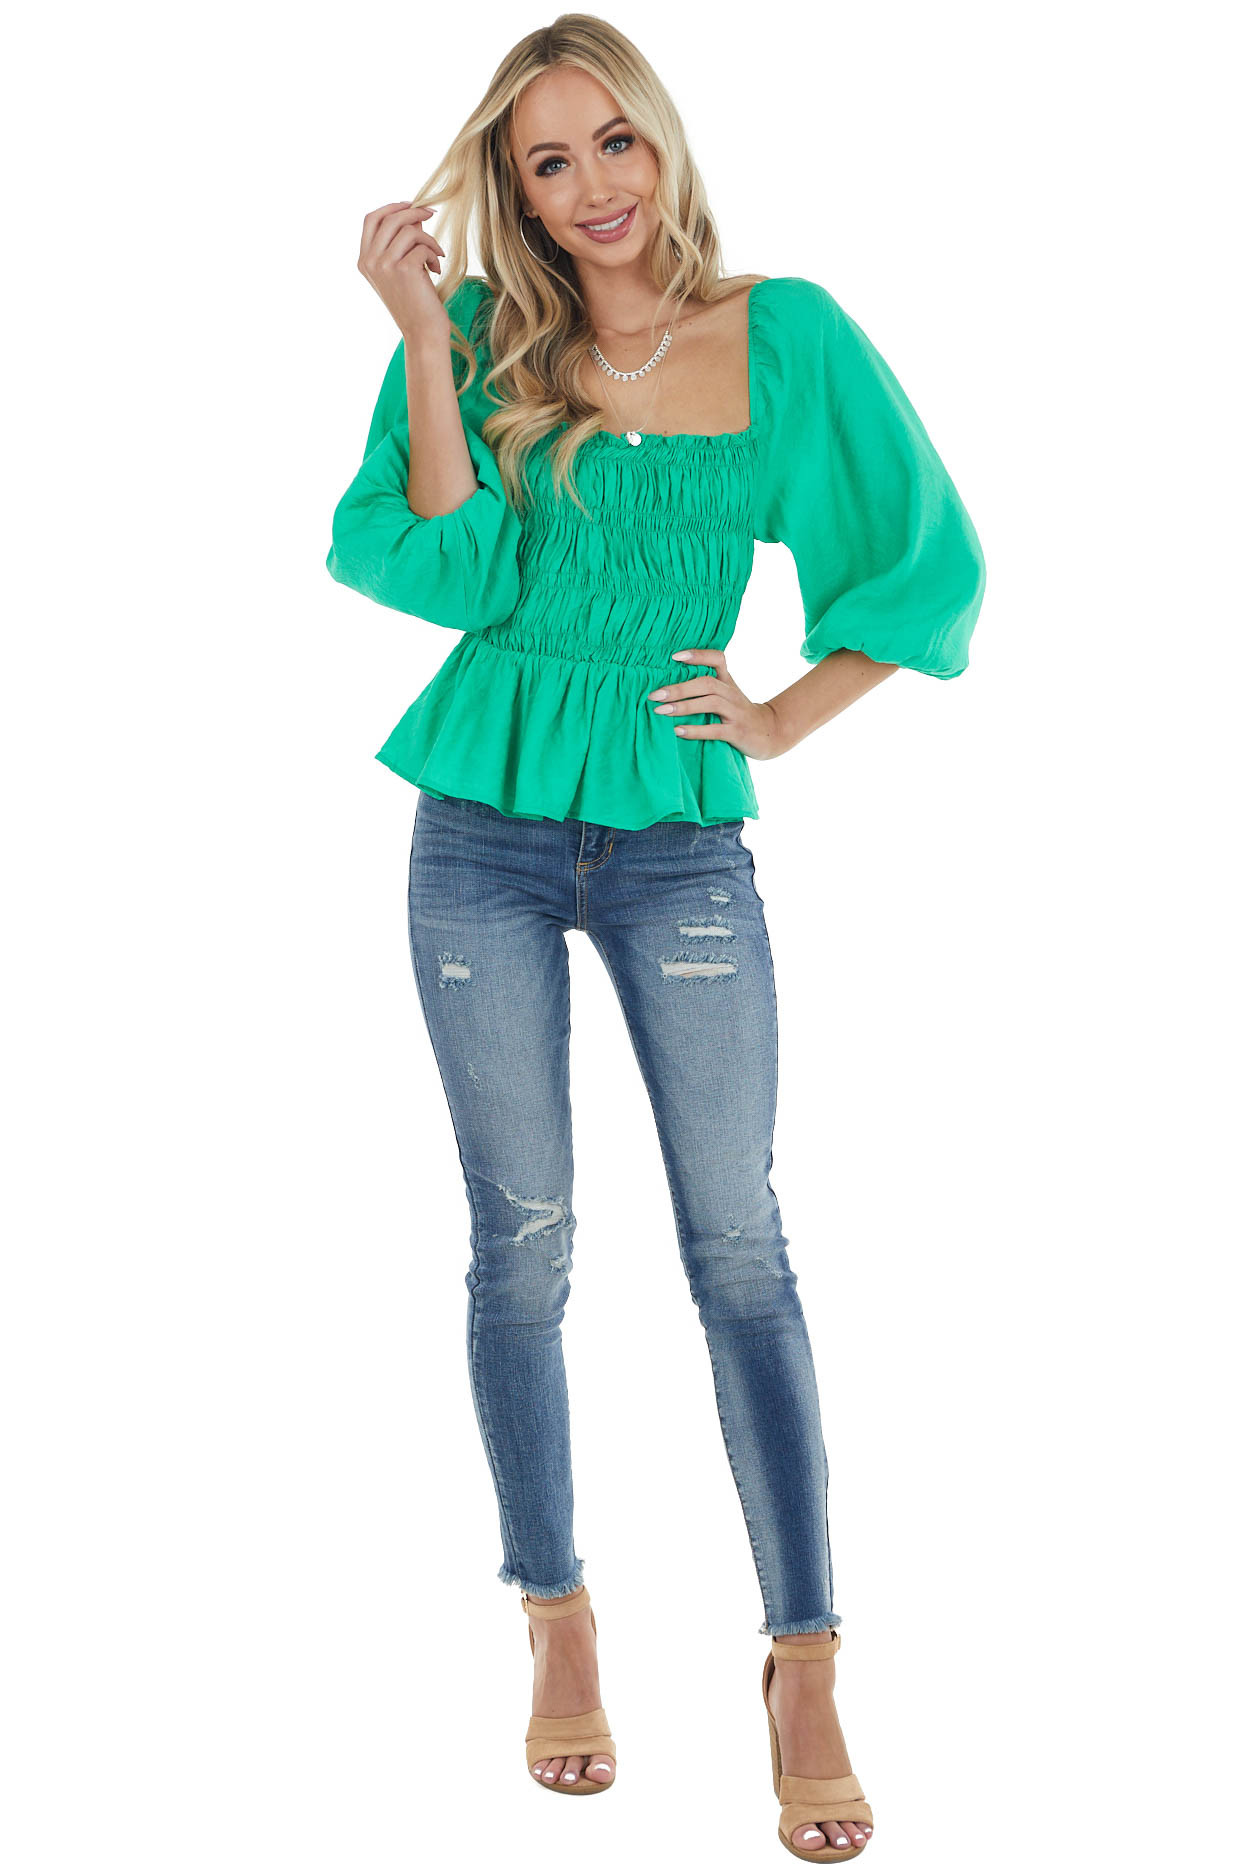 Kelly Green Smocked Top with 3/4 Length Bubble Sleeves